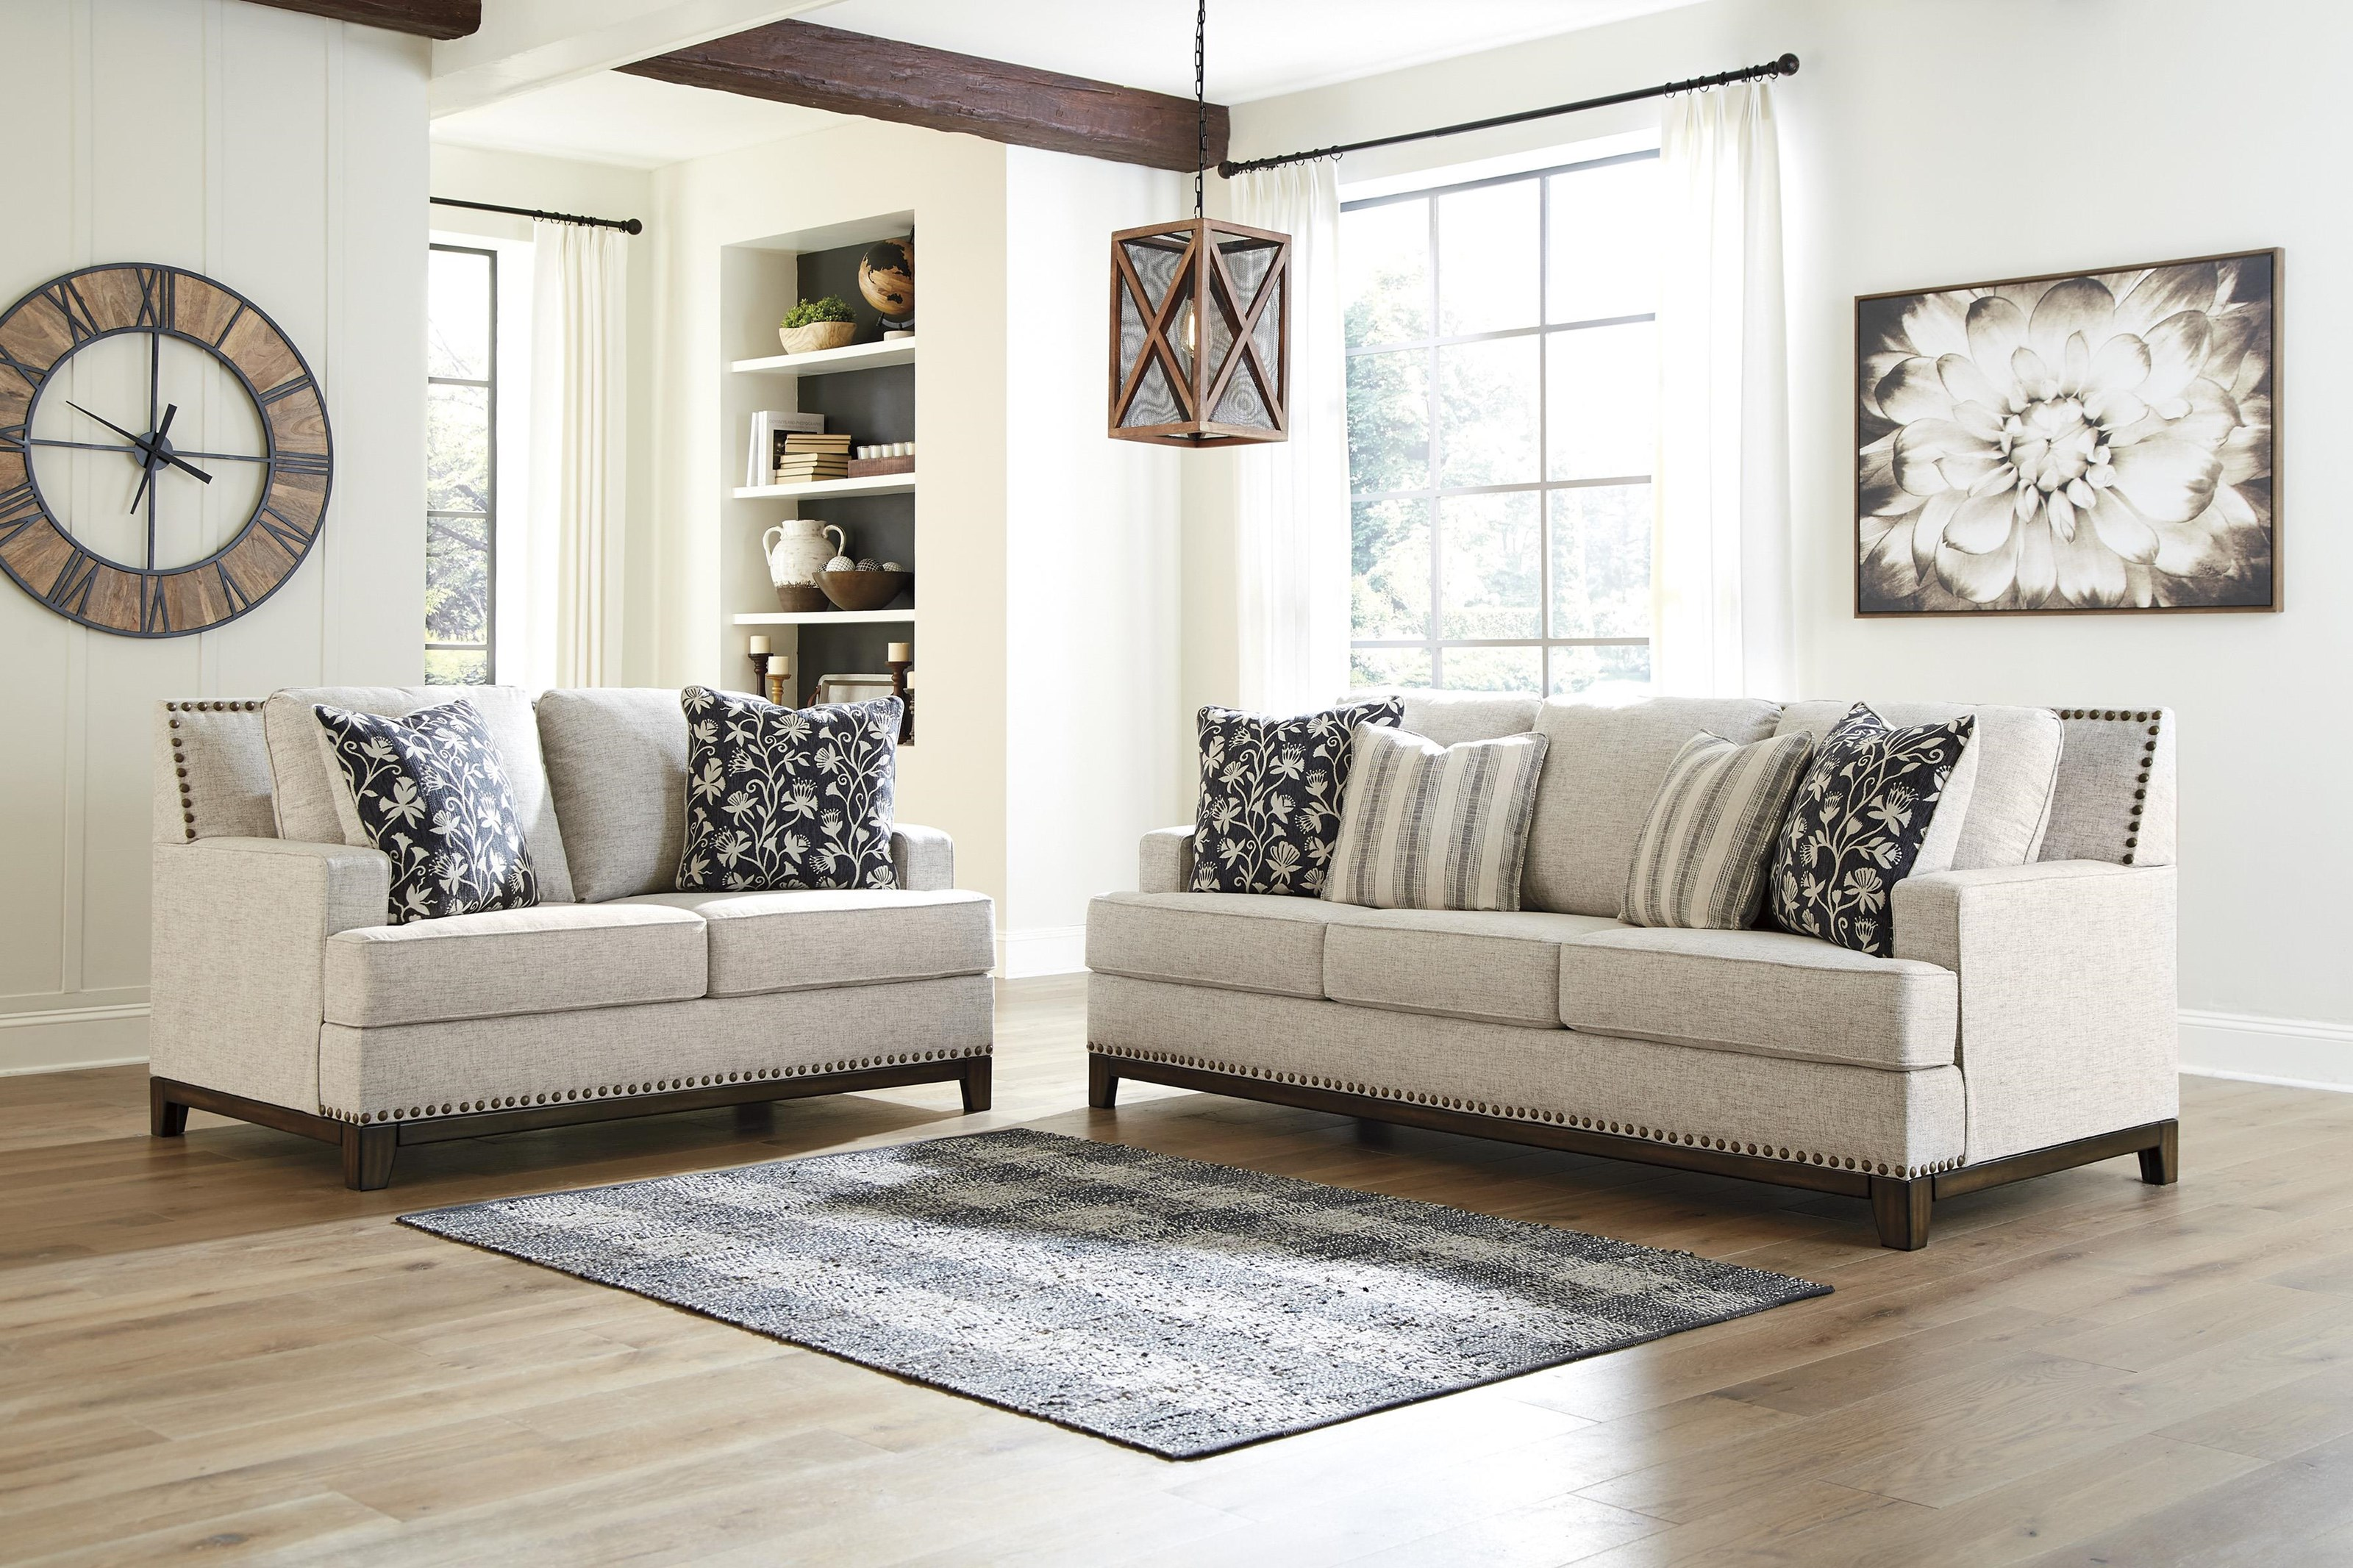 Picture of: Ashley Furniture Ballina 1470738 35 Linen Sofa And Loveseat Set Sam Levitz Furniture Stationary Living Room Groups